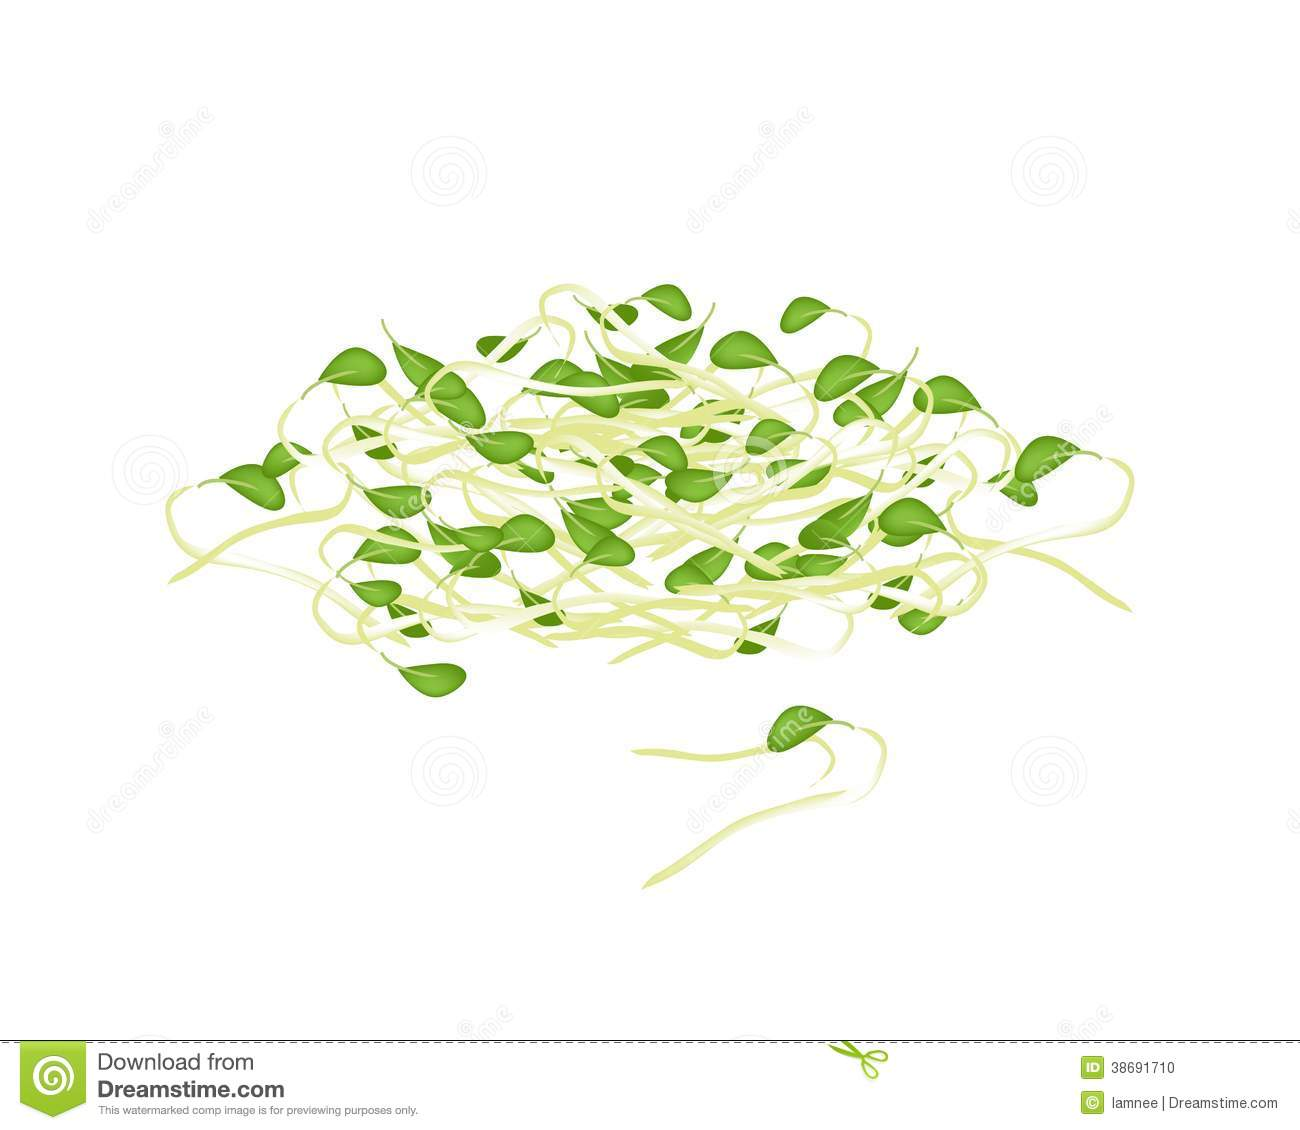 Green bean sprout clipart.